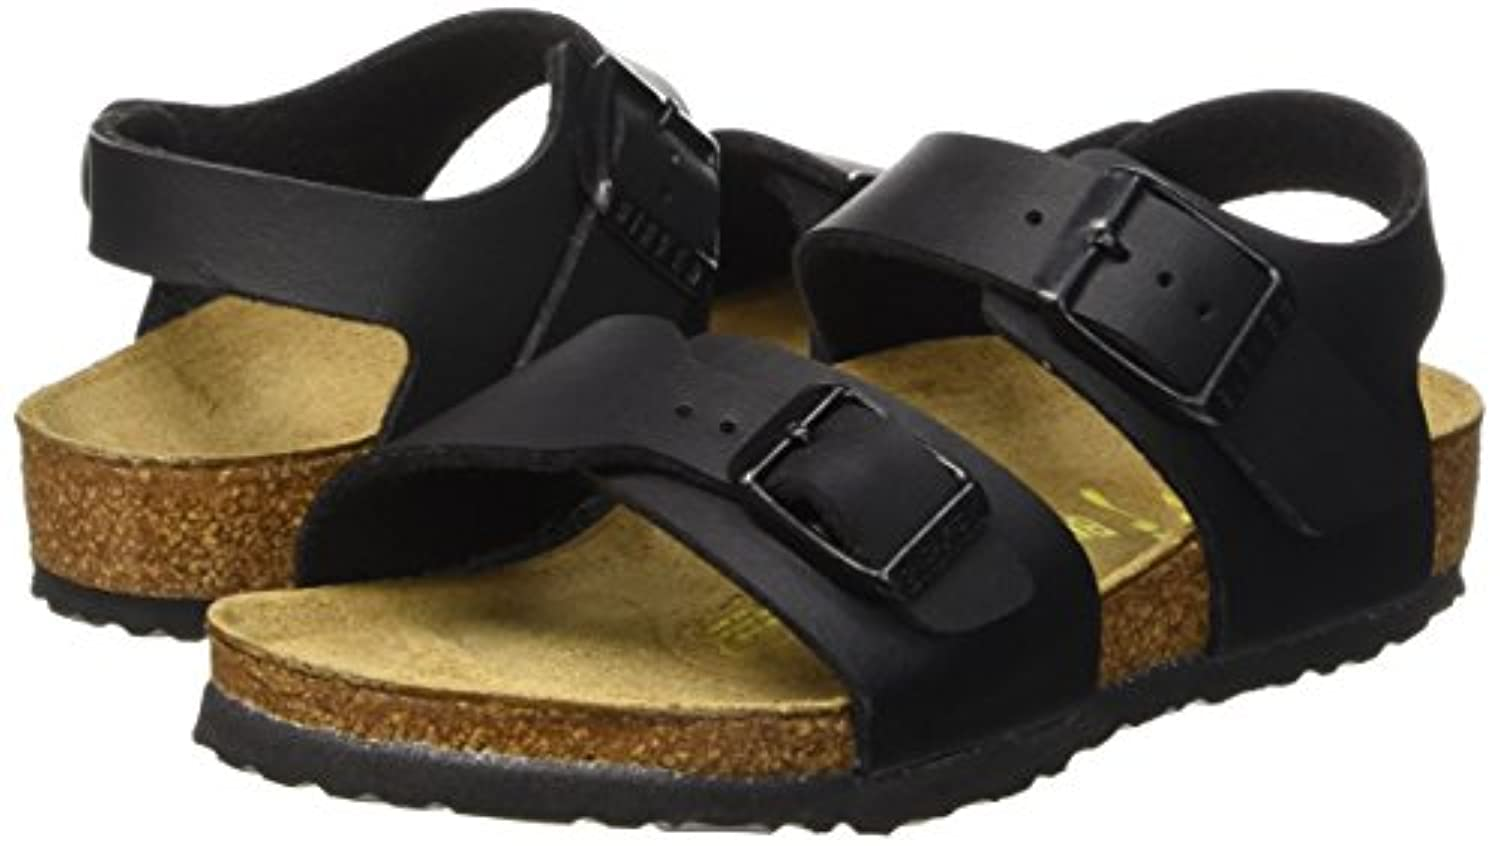 Birkenstock Boys' New York Open Toe Sandals Black Size: 3